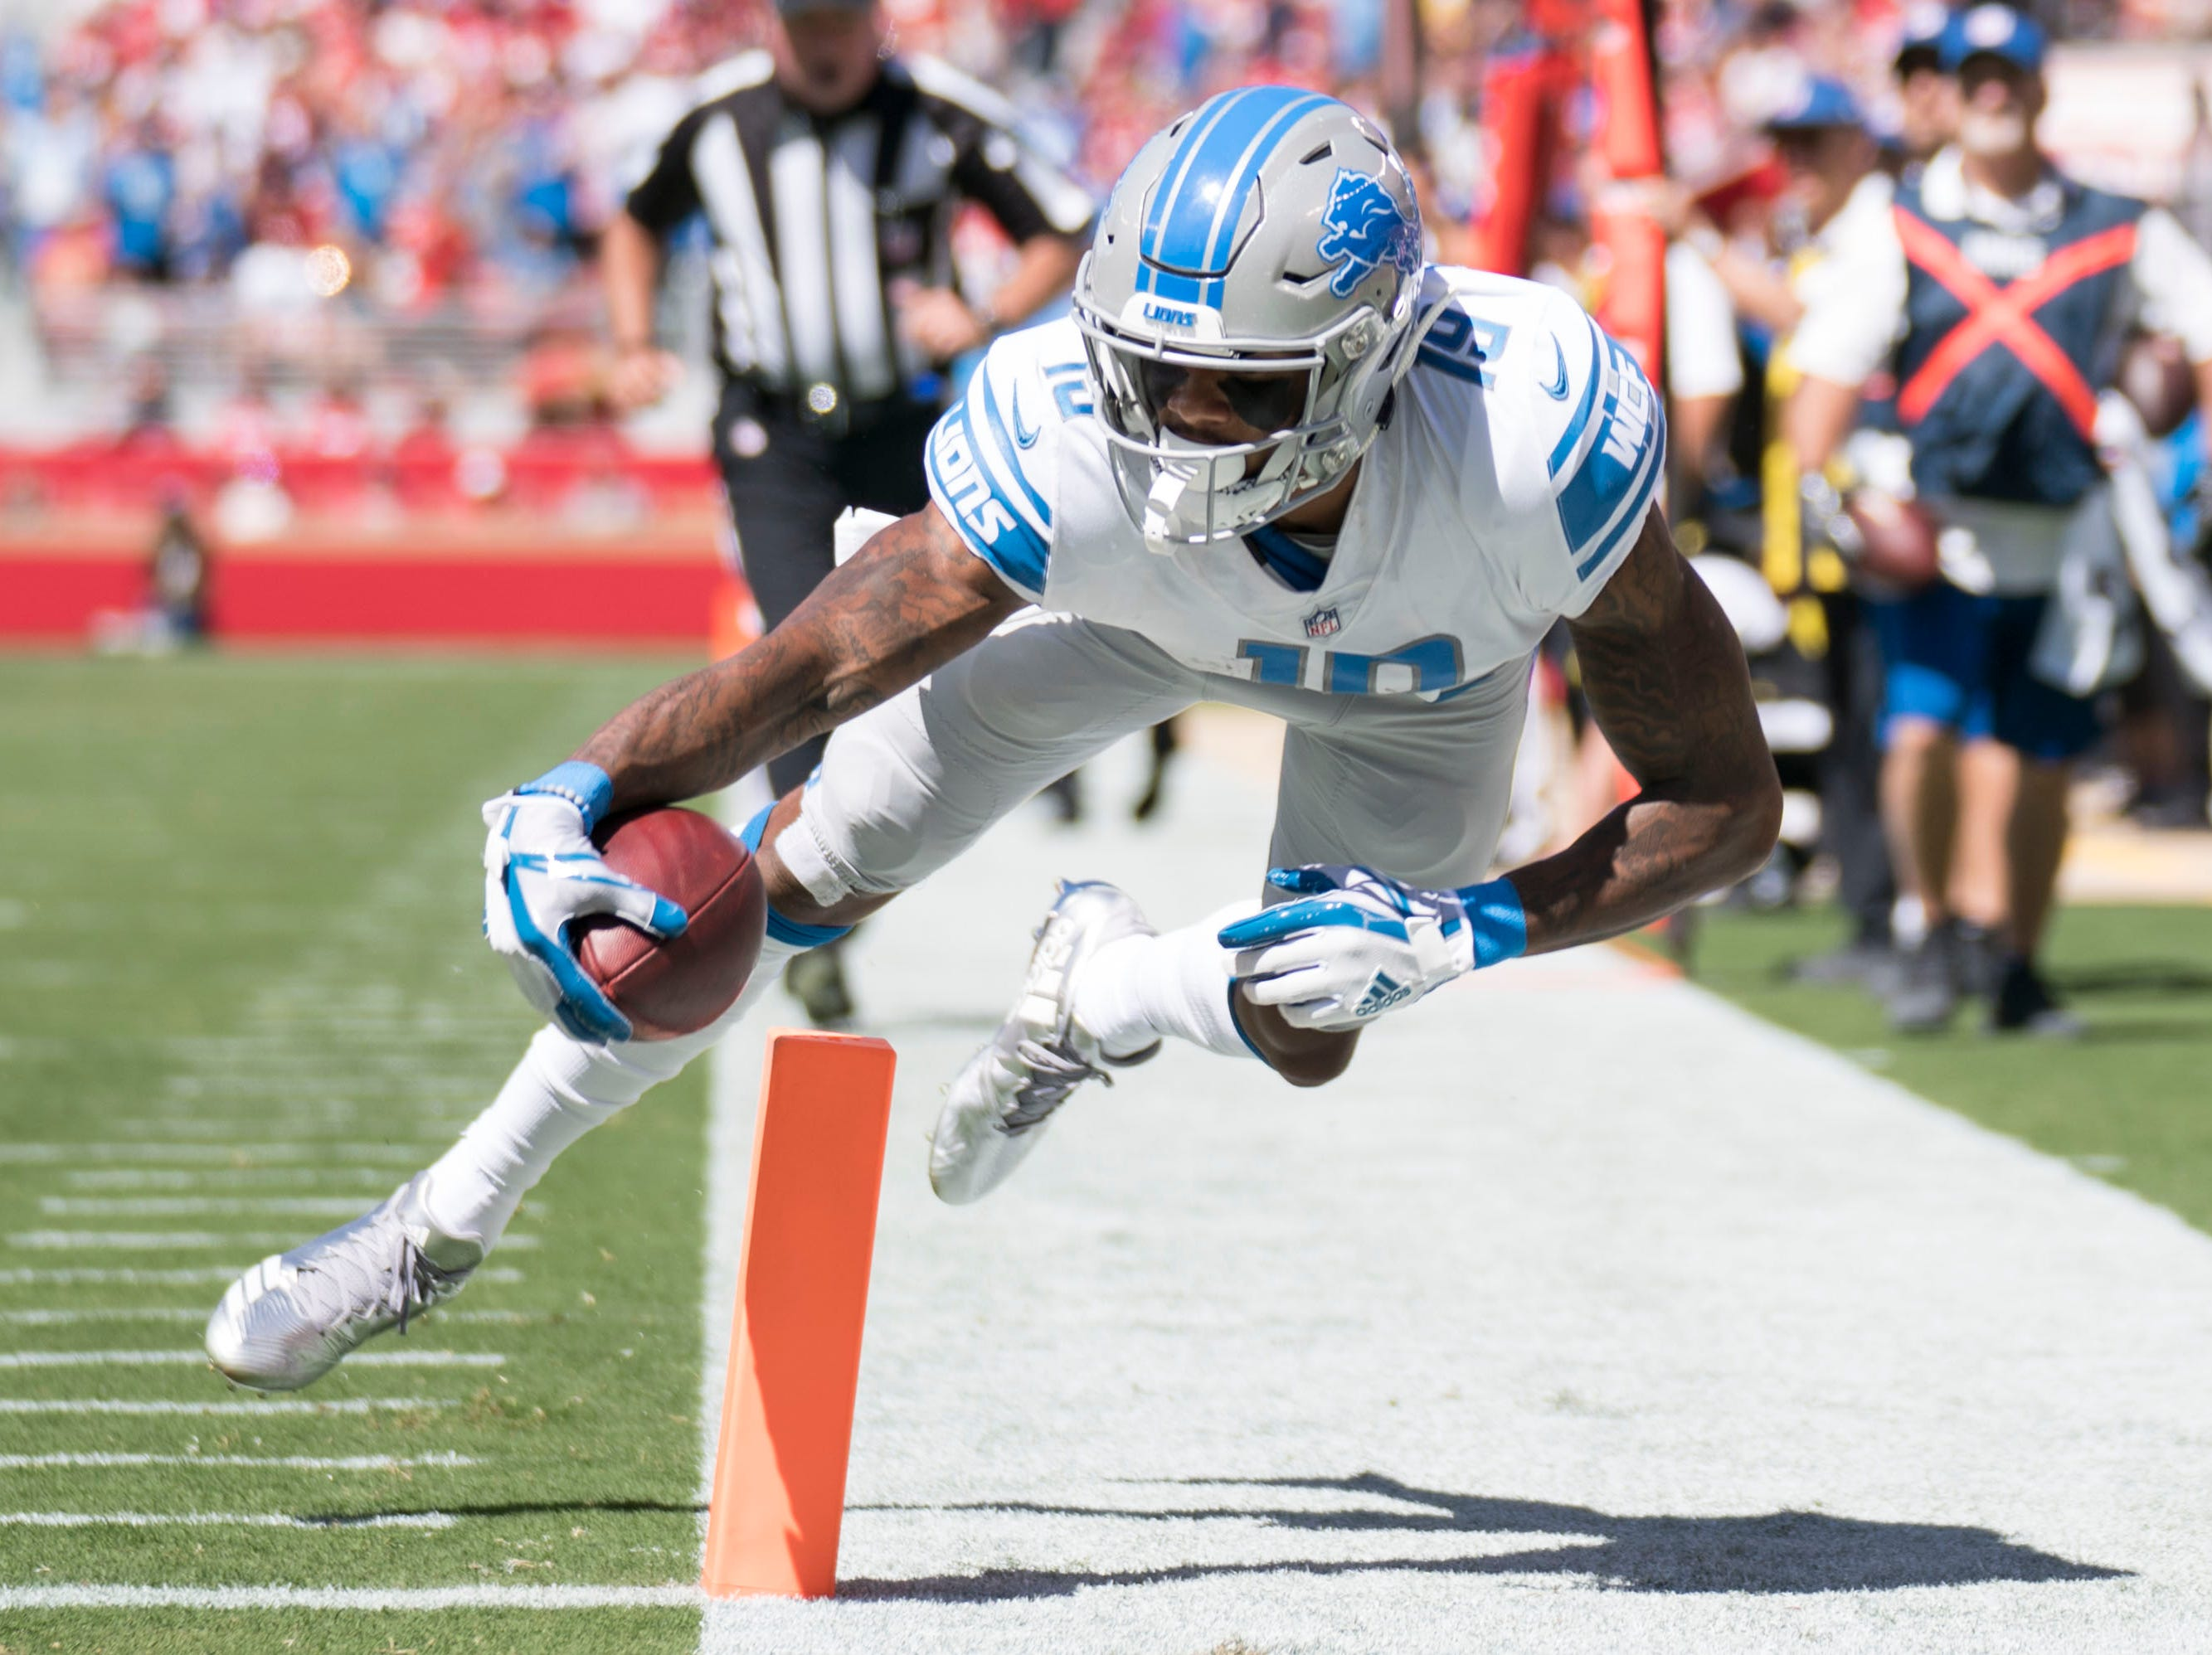 Sept. 16: Detroit Lions wide receiver Kenny Golladay scores a touchdown against the San Francisco 49ers during the first quarter at Levi's Stadium.